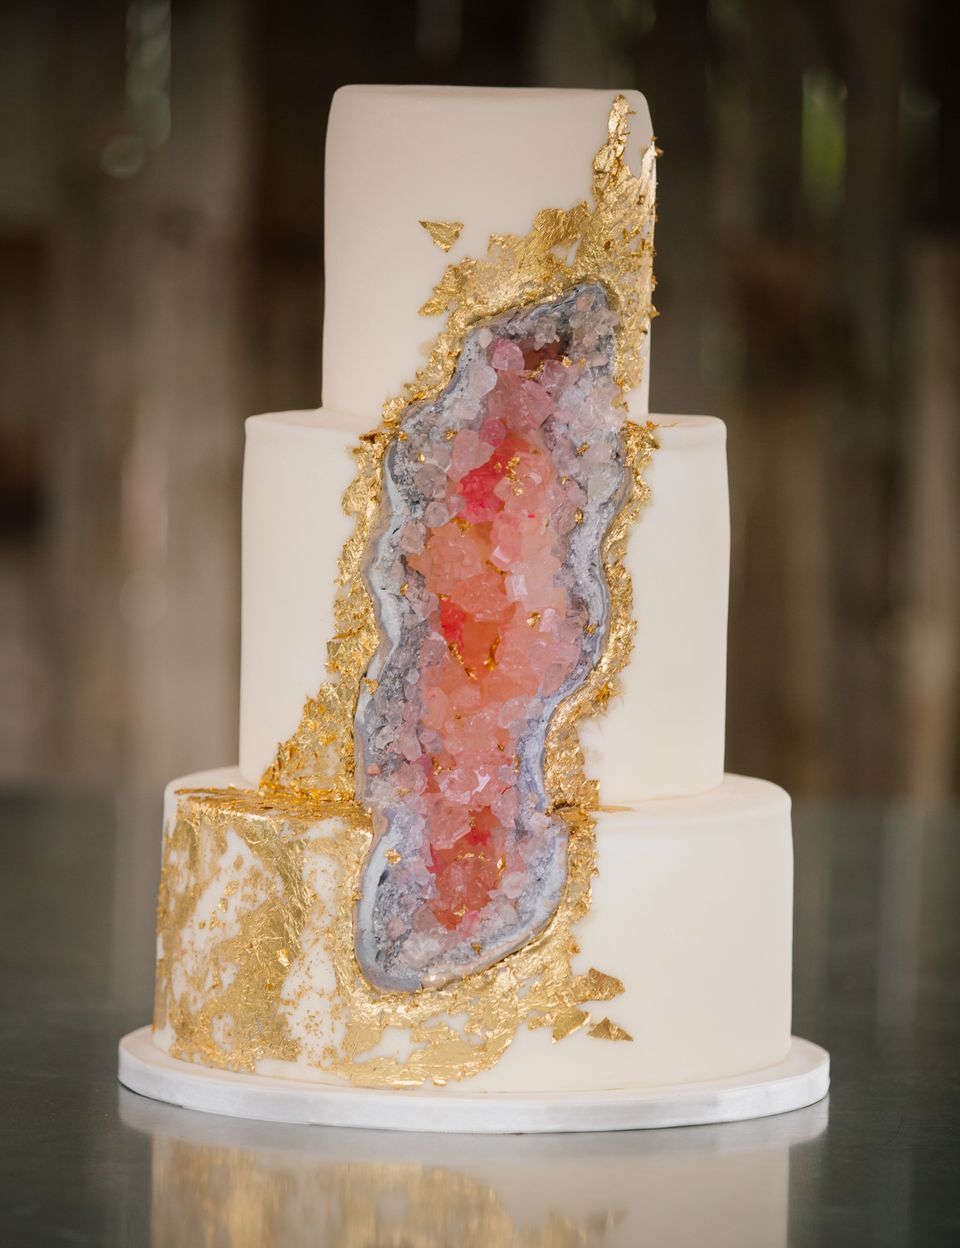 Geode Wedding Cake.Proof That Geode Cakes Are The Crown Jewel Of All Wedding Trends